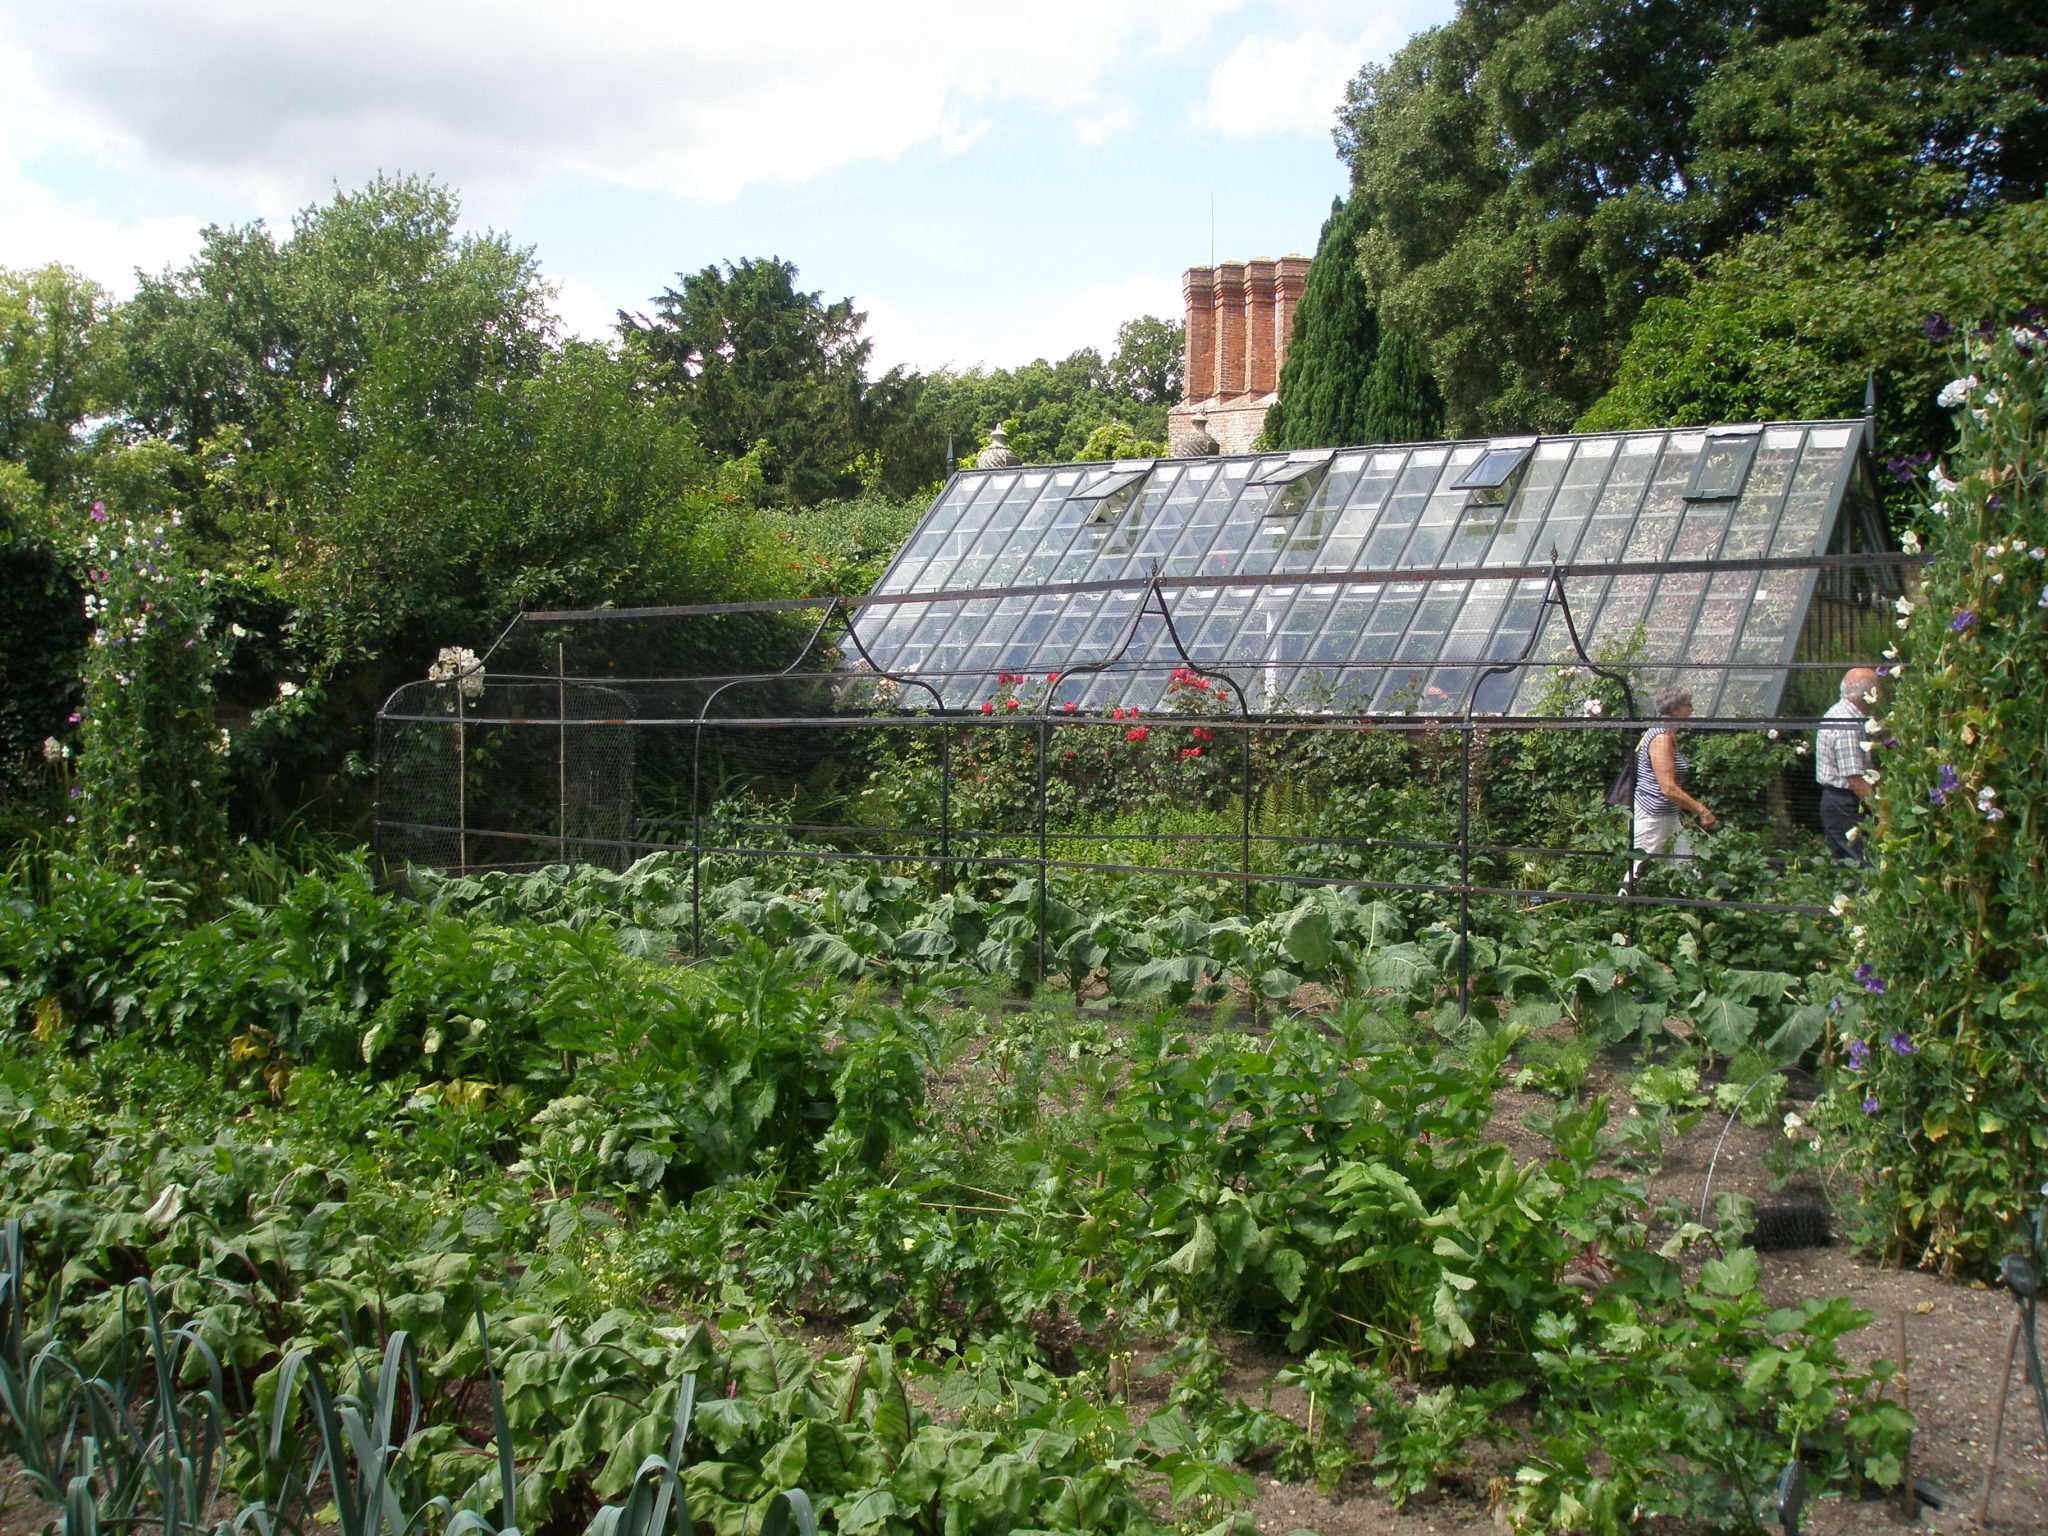 A Glass House, in the Potager